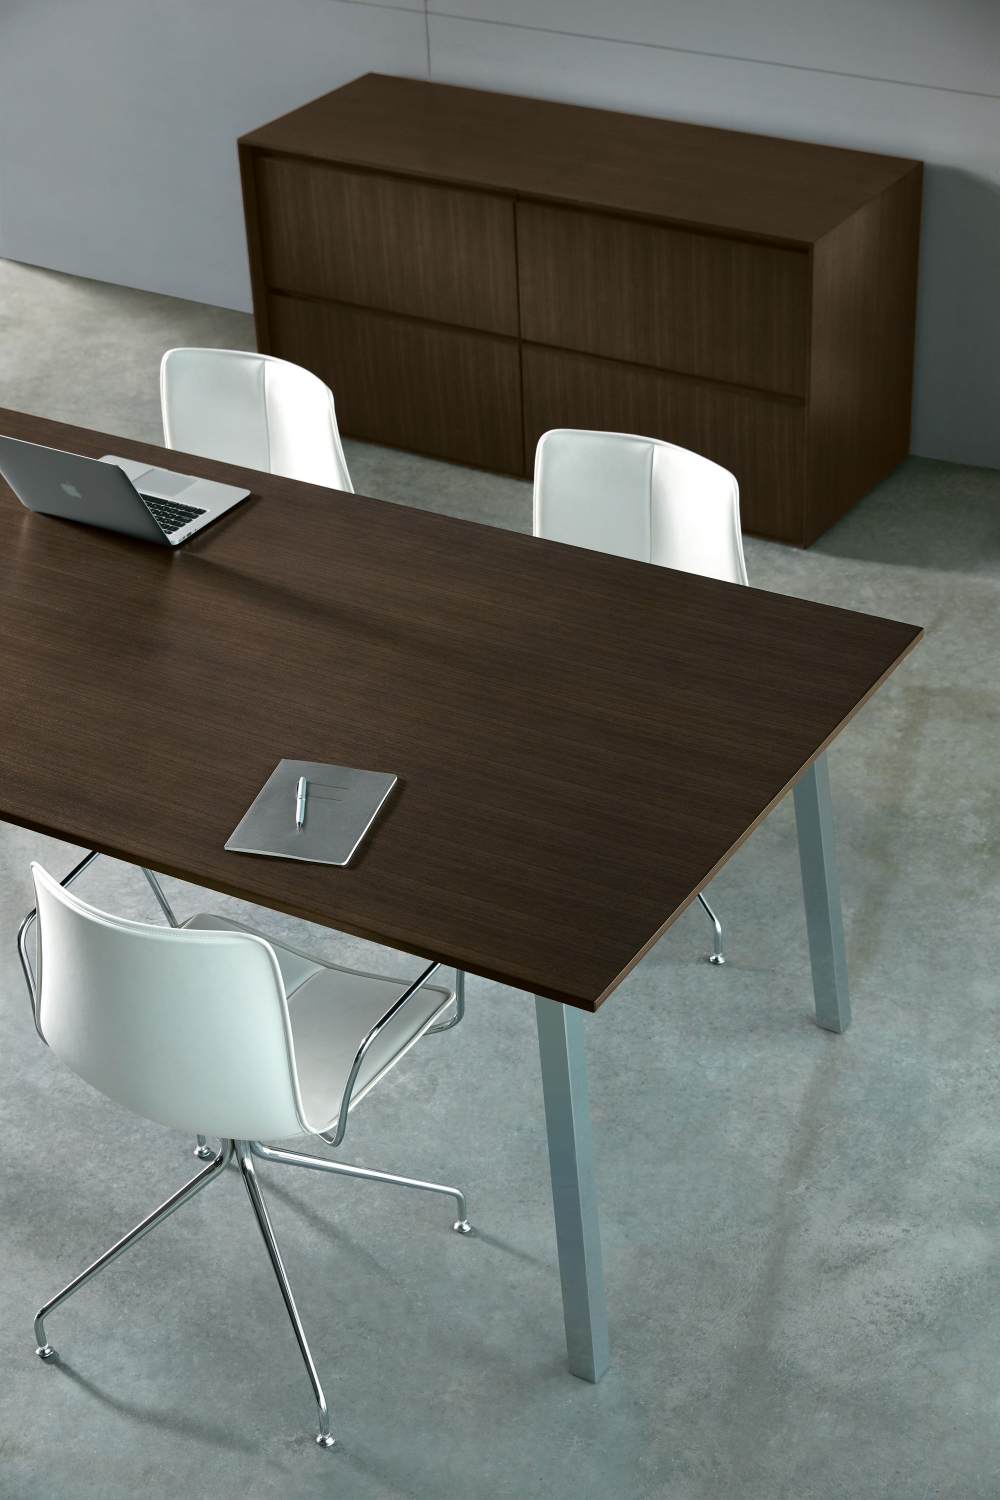 Preview of Two4Six | Meeting Table | Veneer | Polished Chrome Post Legs | Matching Credenza